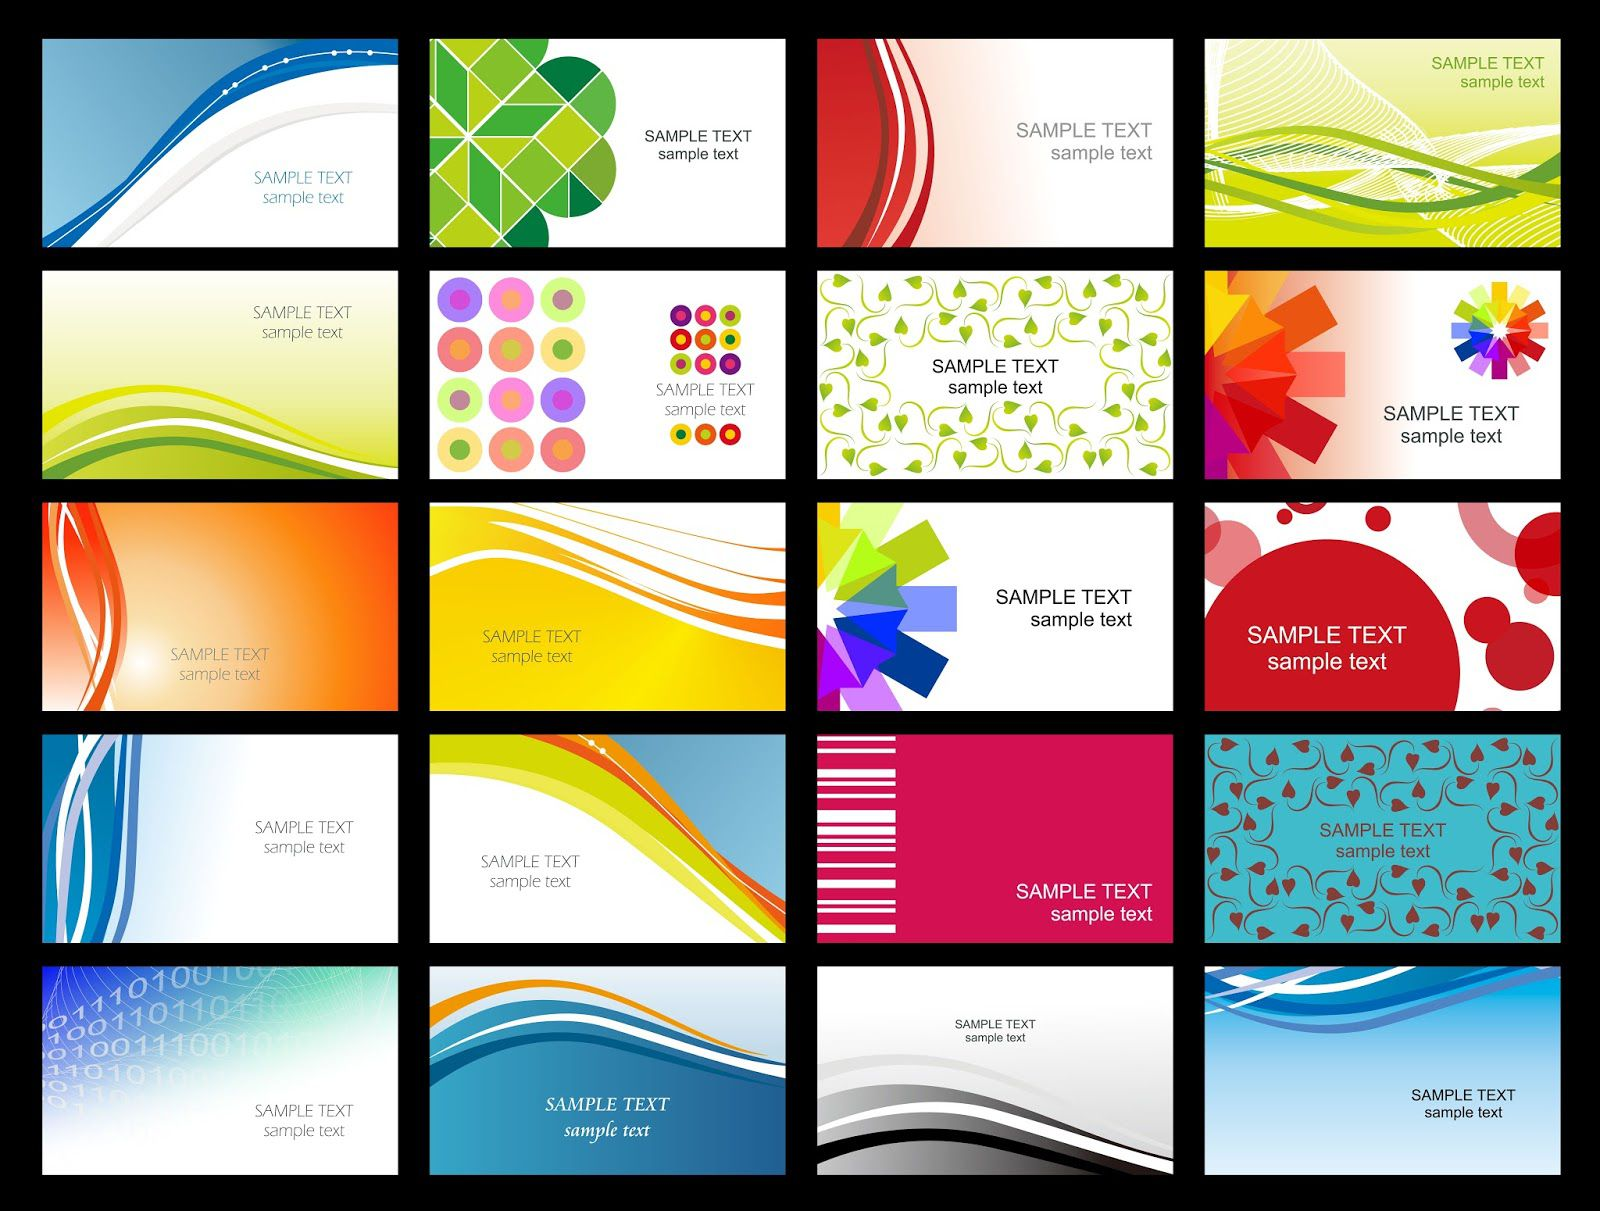 009 Marvelou Free Blank Busines Card Template Photoshop Photo  Download PsdFull